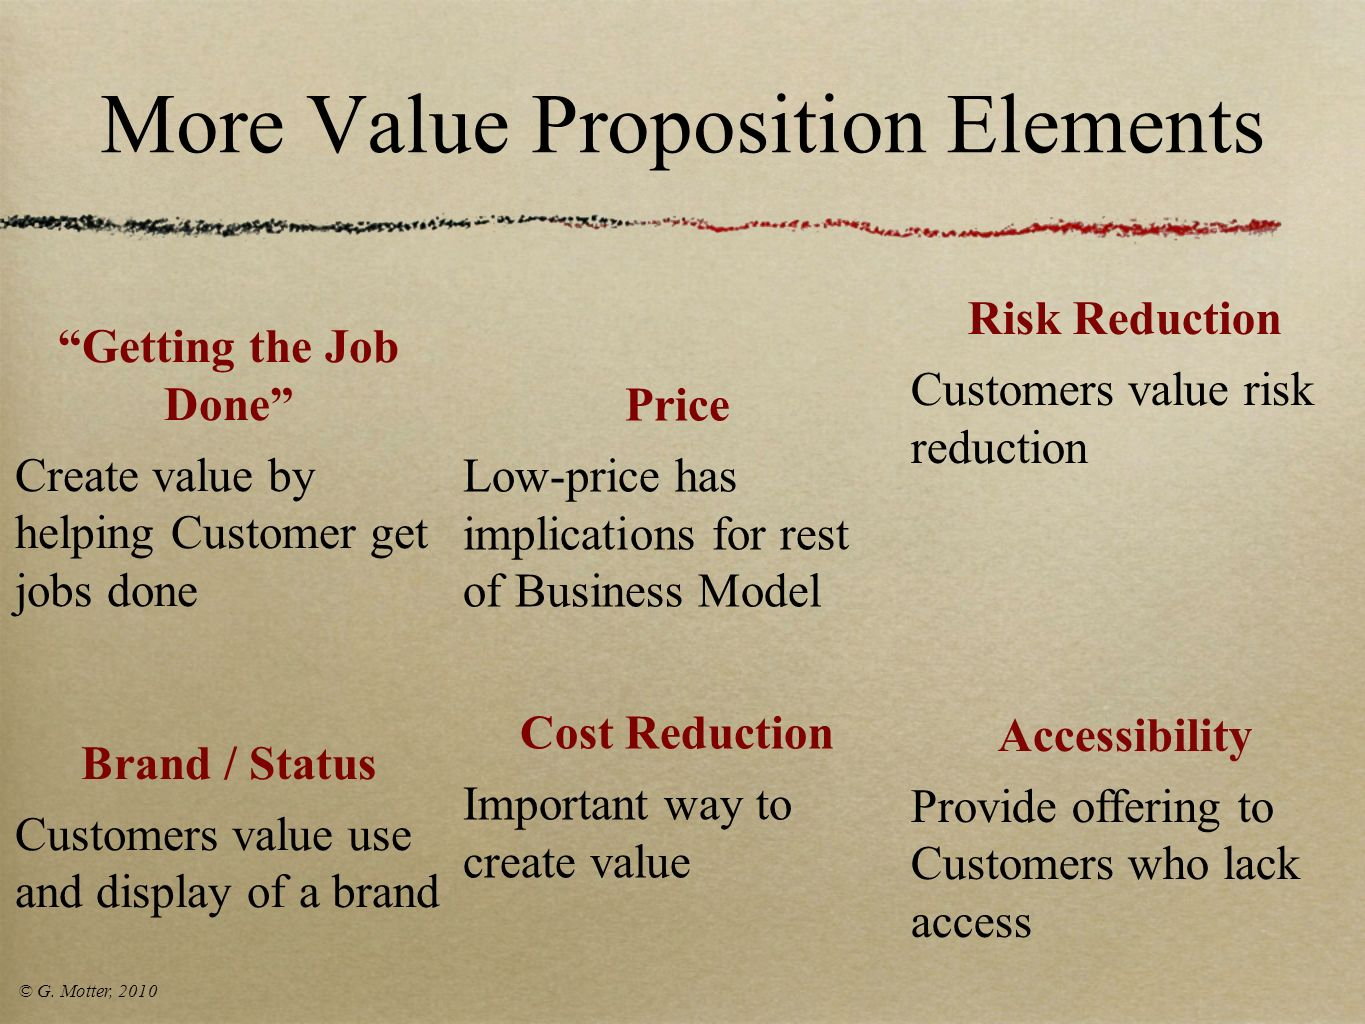 More Value Proposition Elements